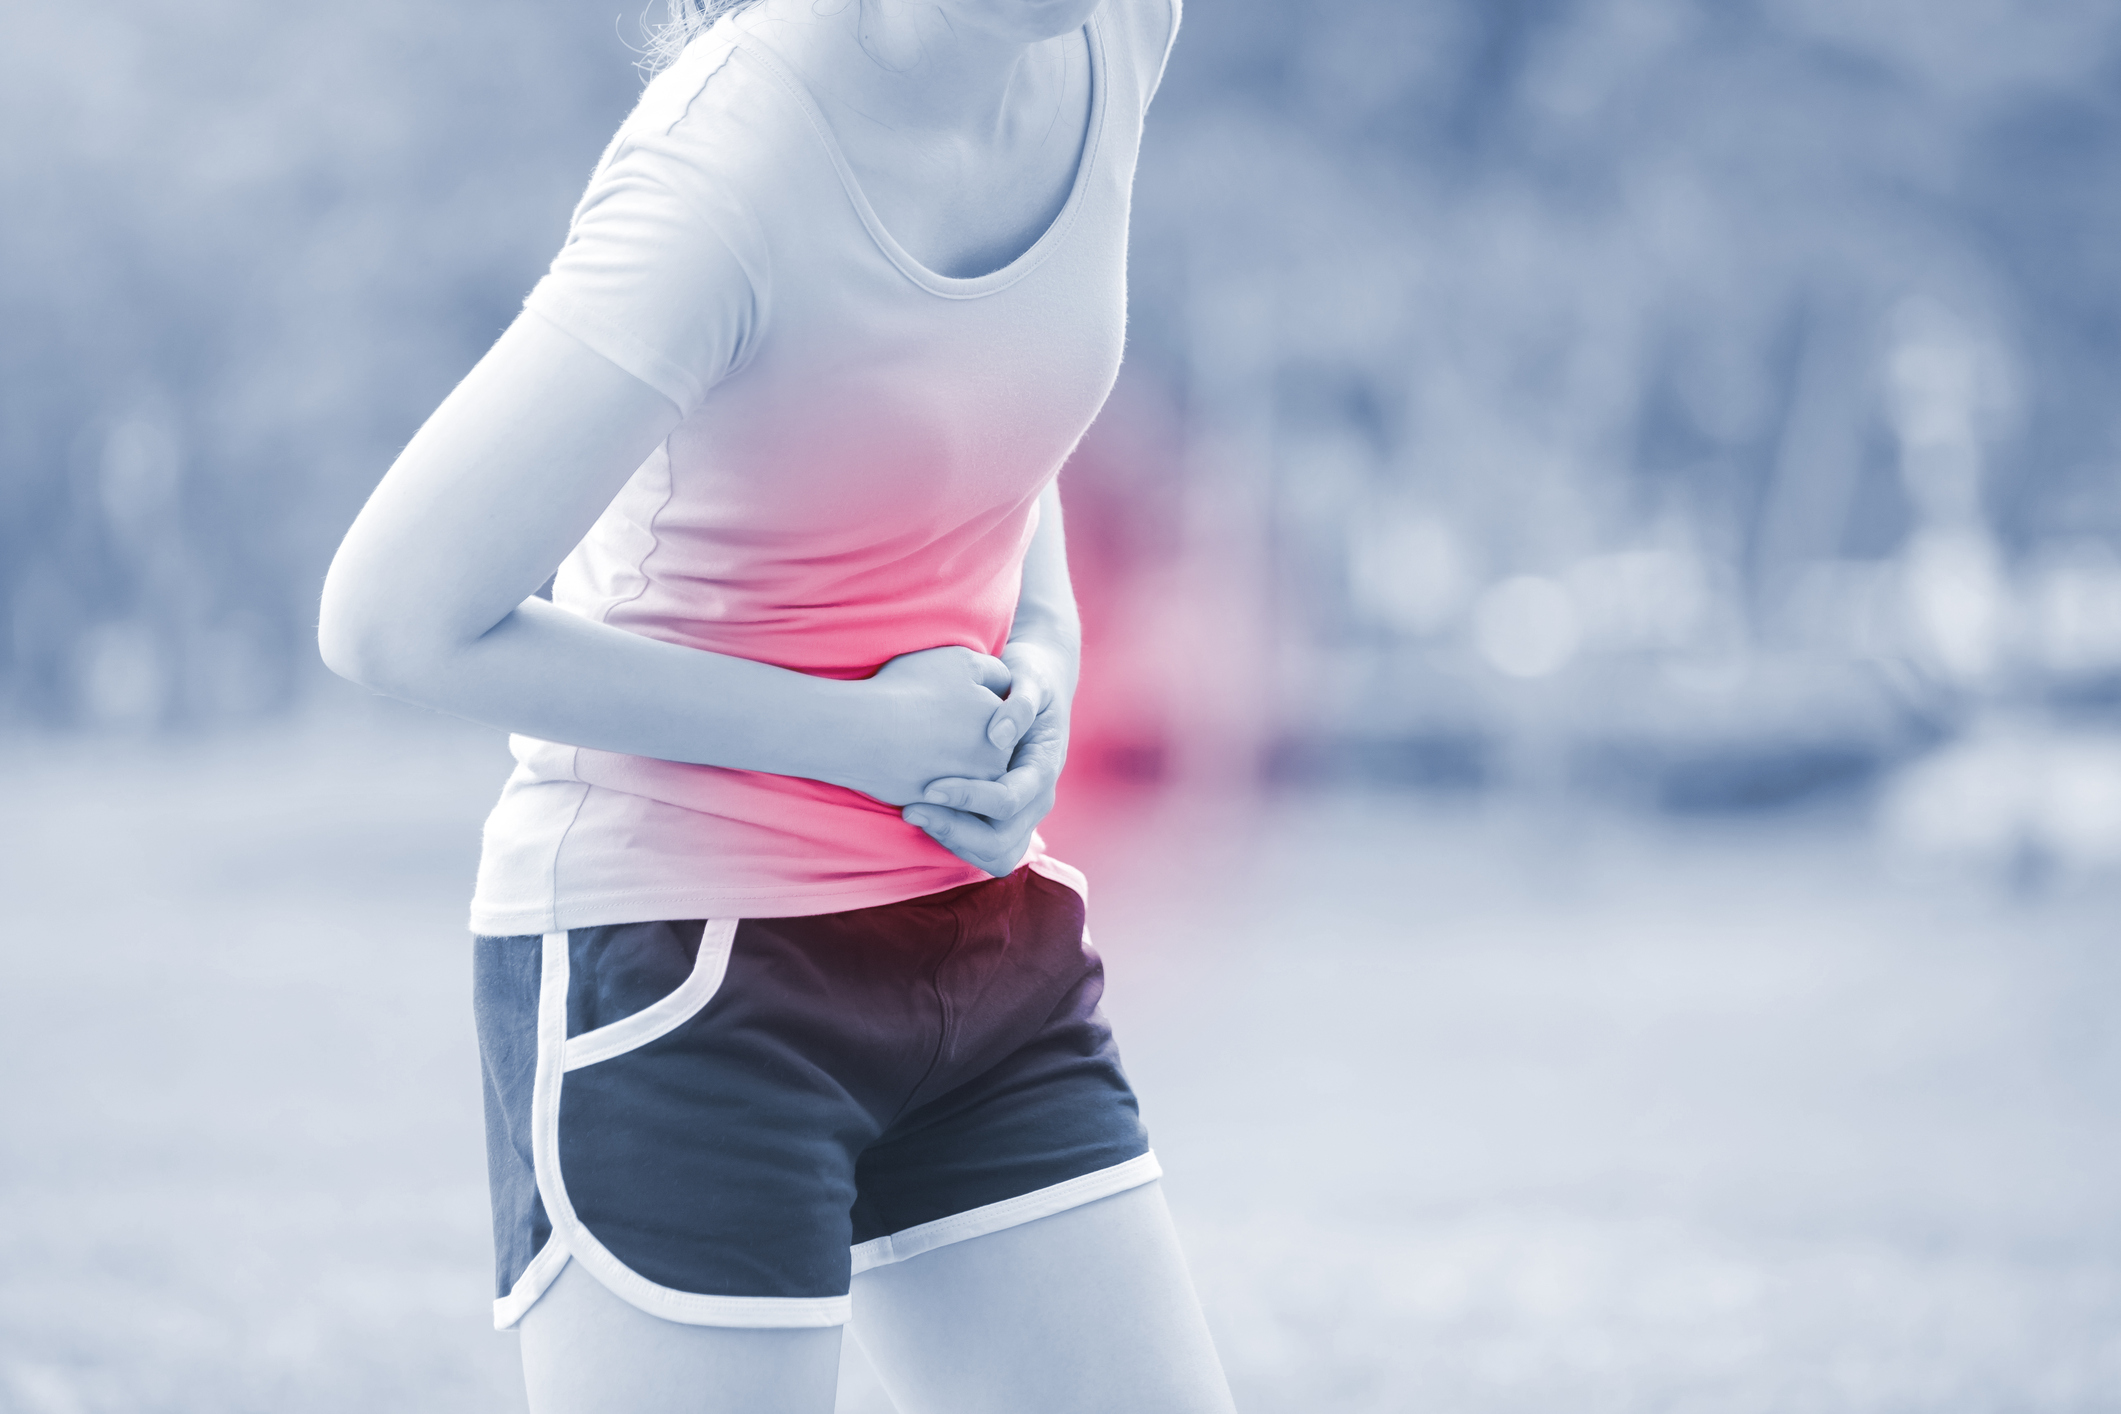 runner suffers stomach cramp